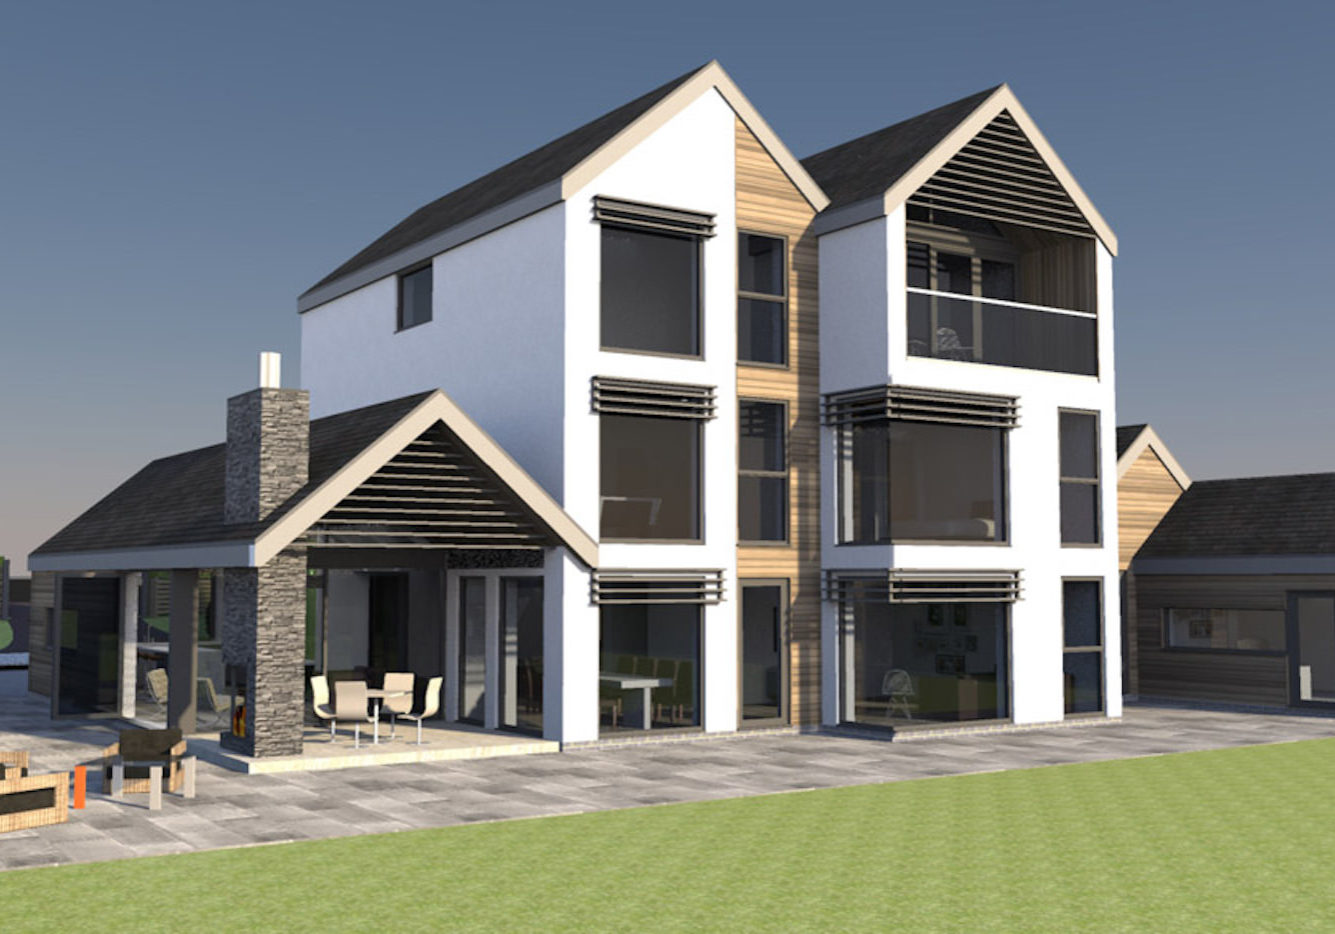 John Morris Architects Wingfield Road New Build House Design 3D Generated Image